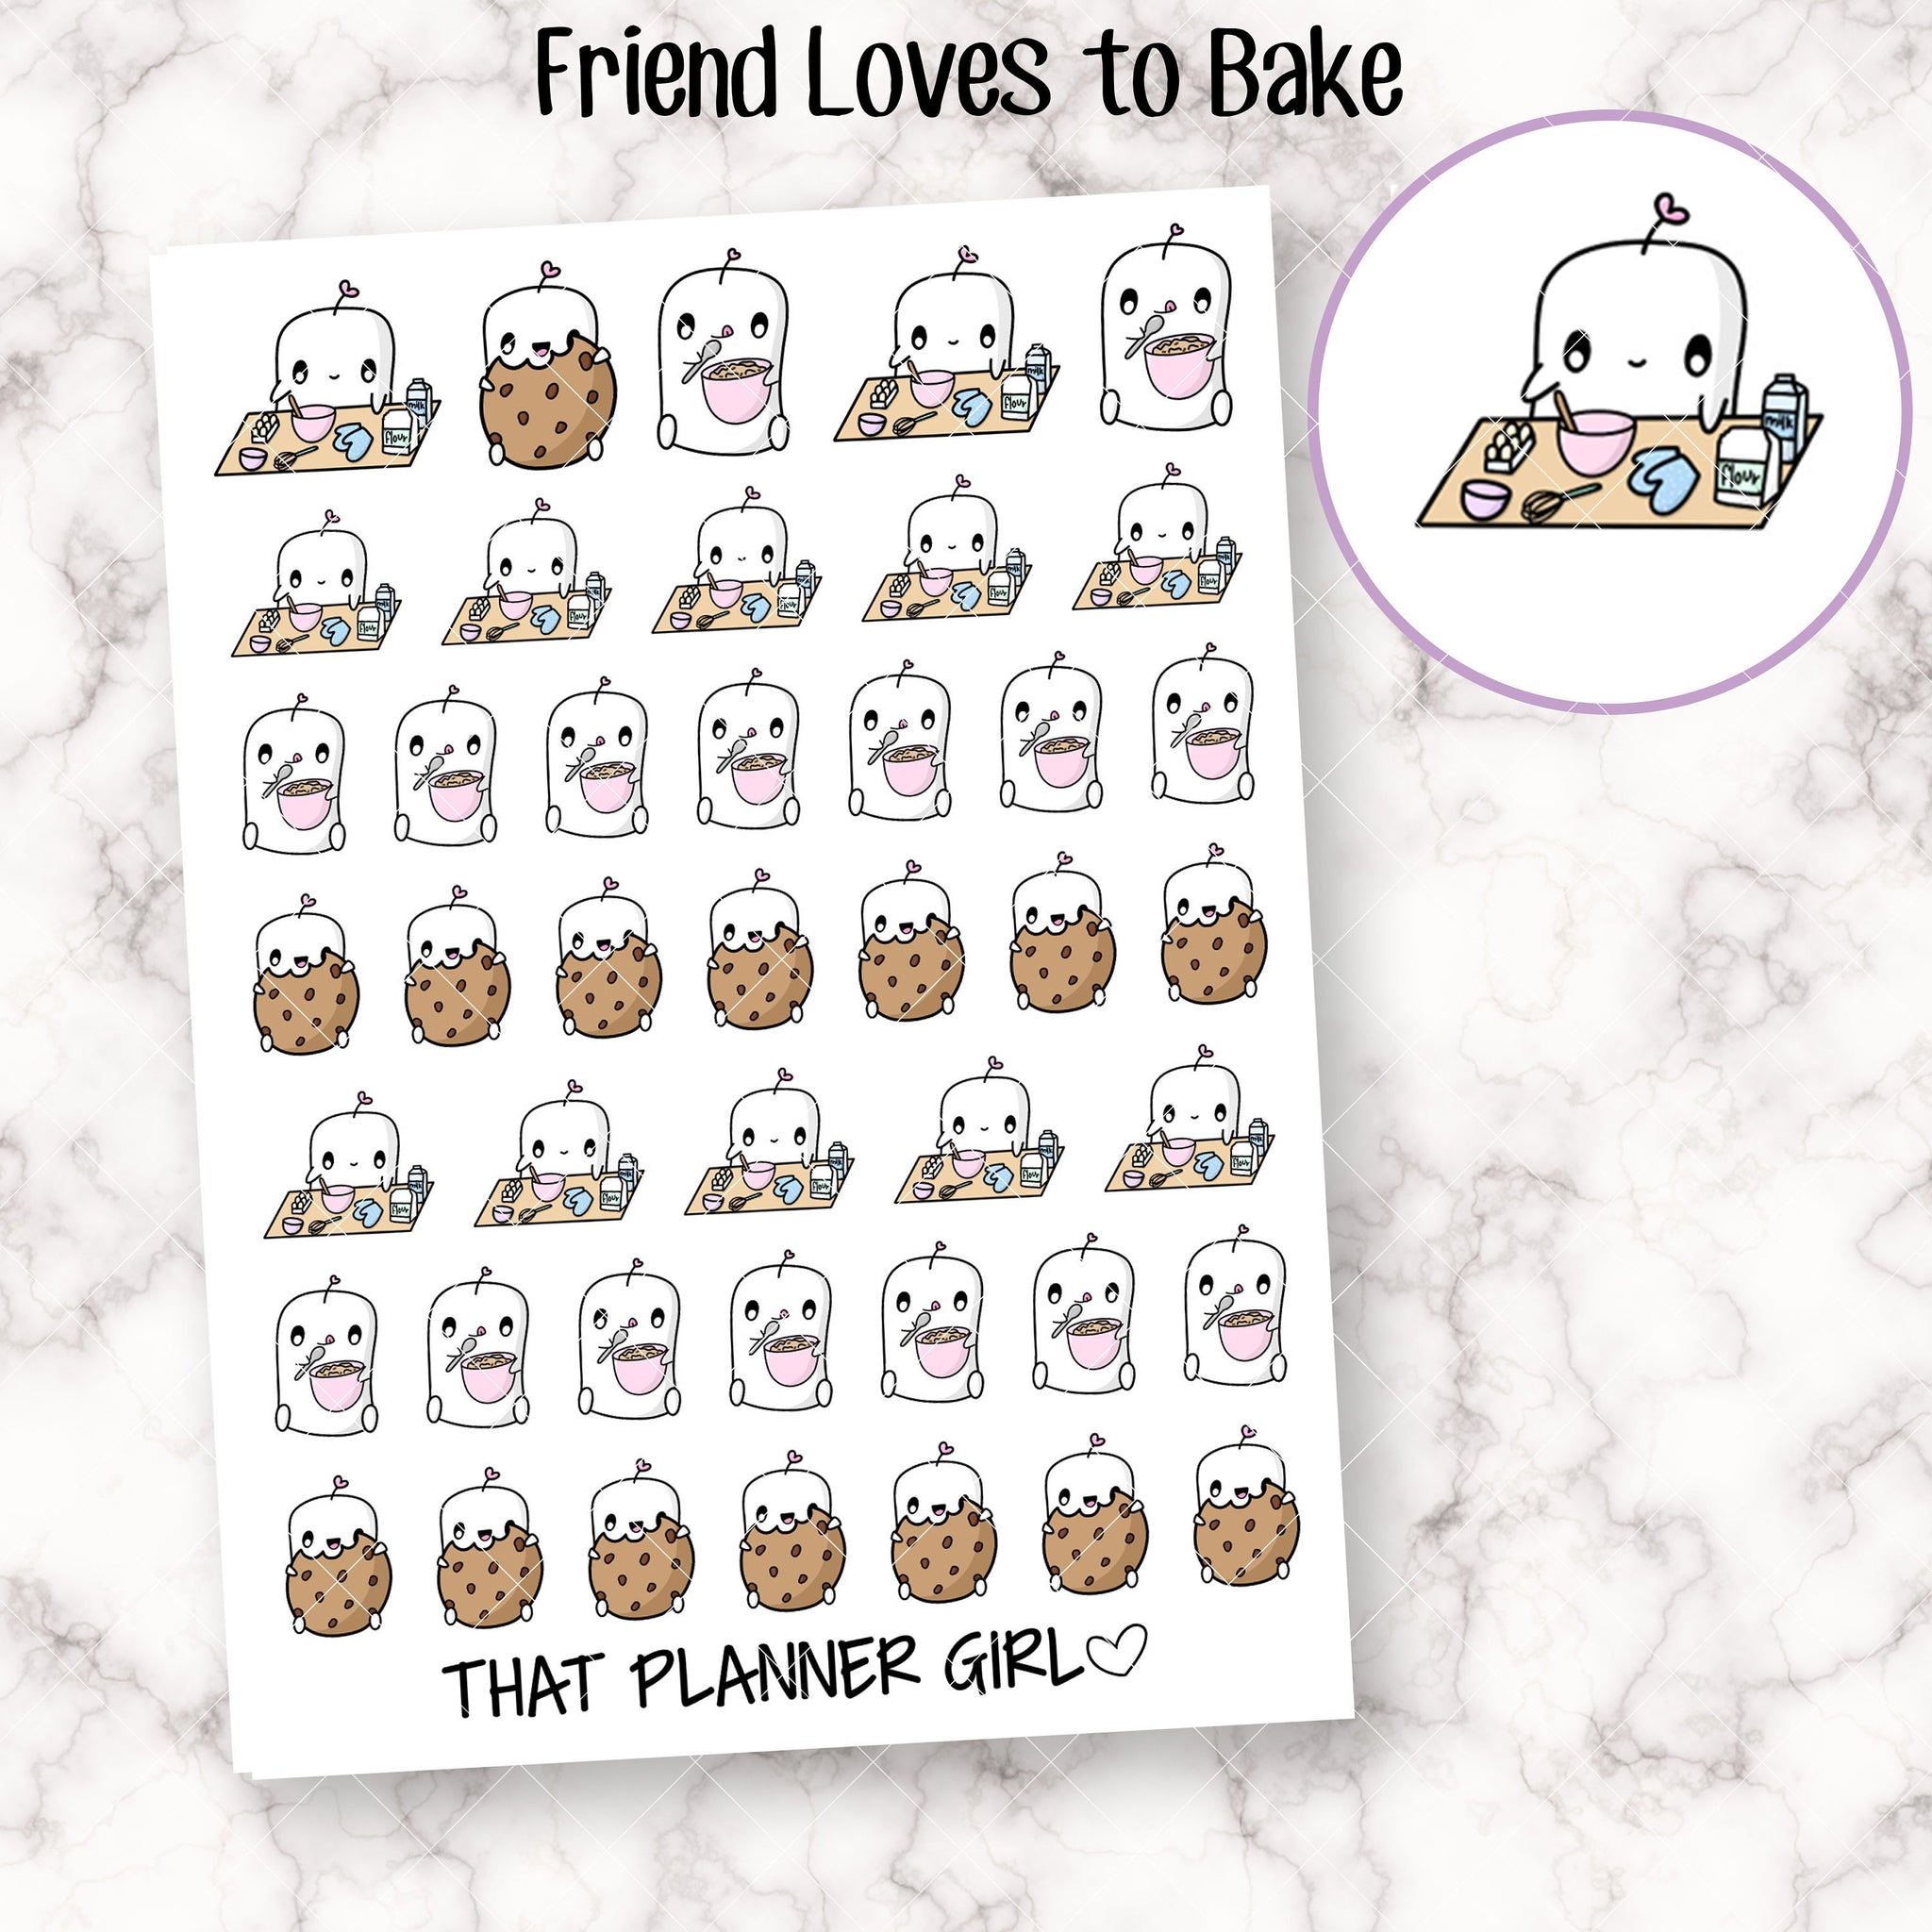 Friend loves to Bake Stickers